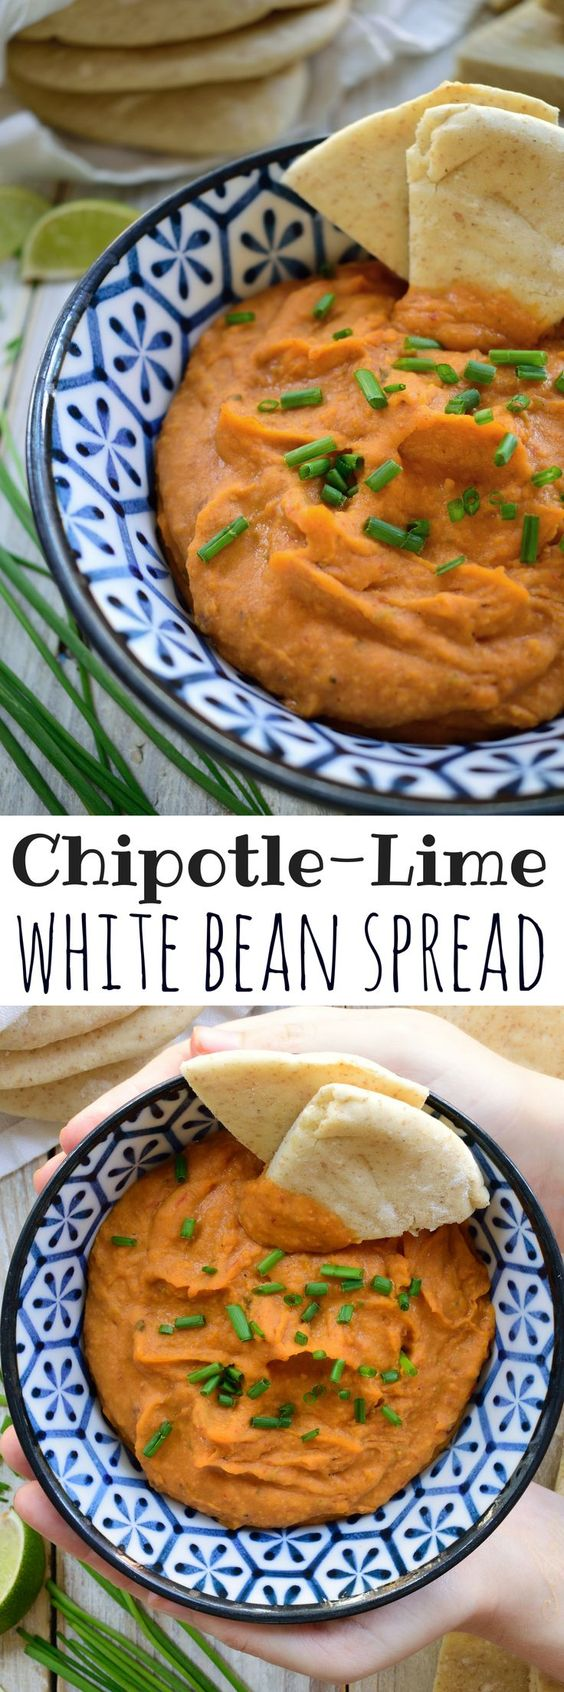 White beans are the basis for this vegan-friendly chipotle-lime spread. Take it as a dip with pita bread or slather it on sandwiches, burritos, wraps or quesadillas!